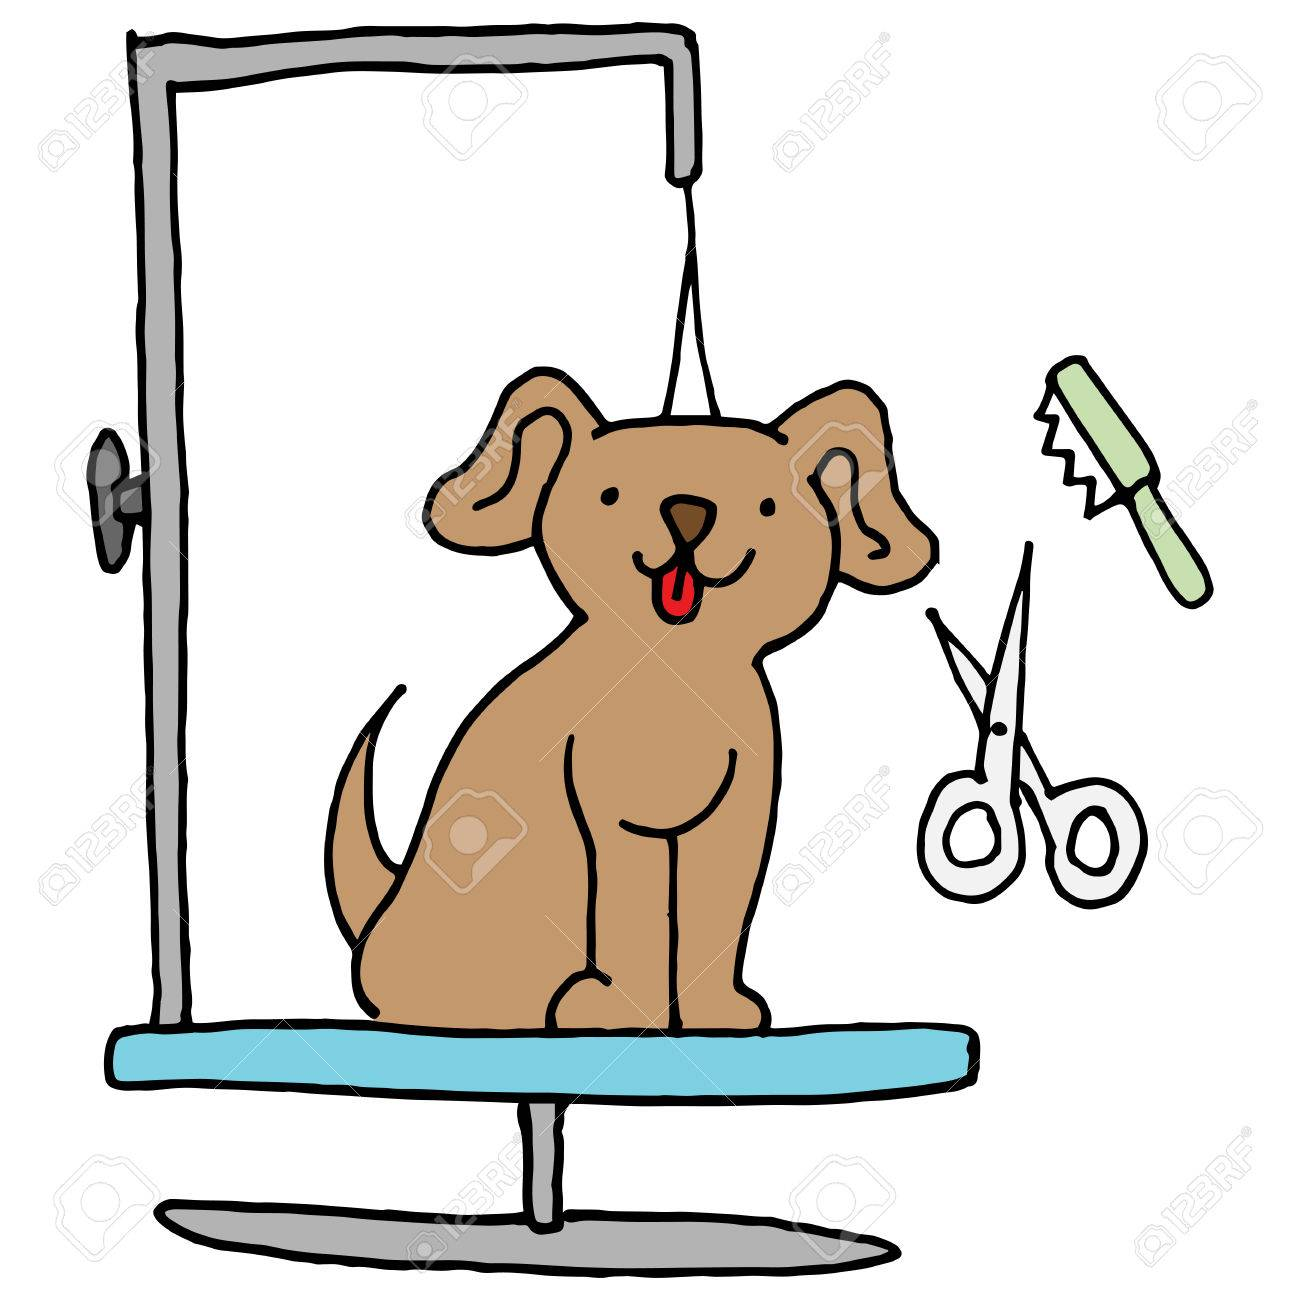 an image of a dog grooming table royalty free cliparts vectors rh 123rf com clipart dog grooming salon enniskillen dog grooming clipart